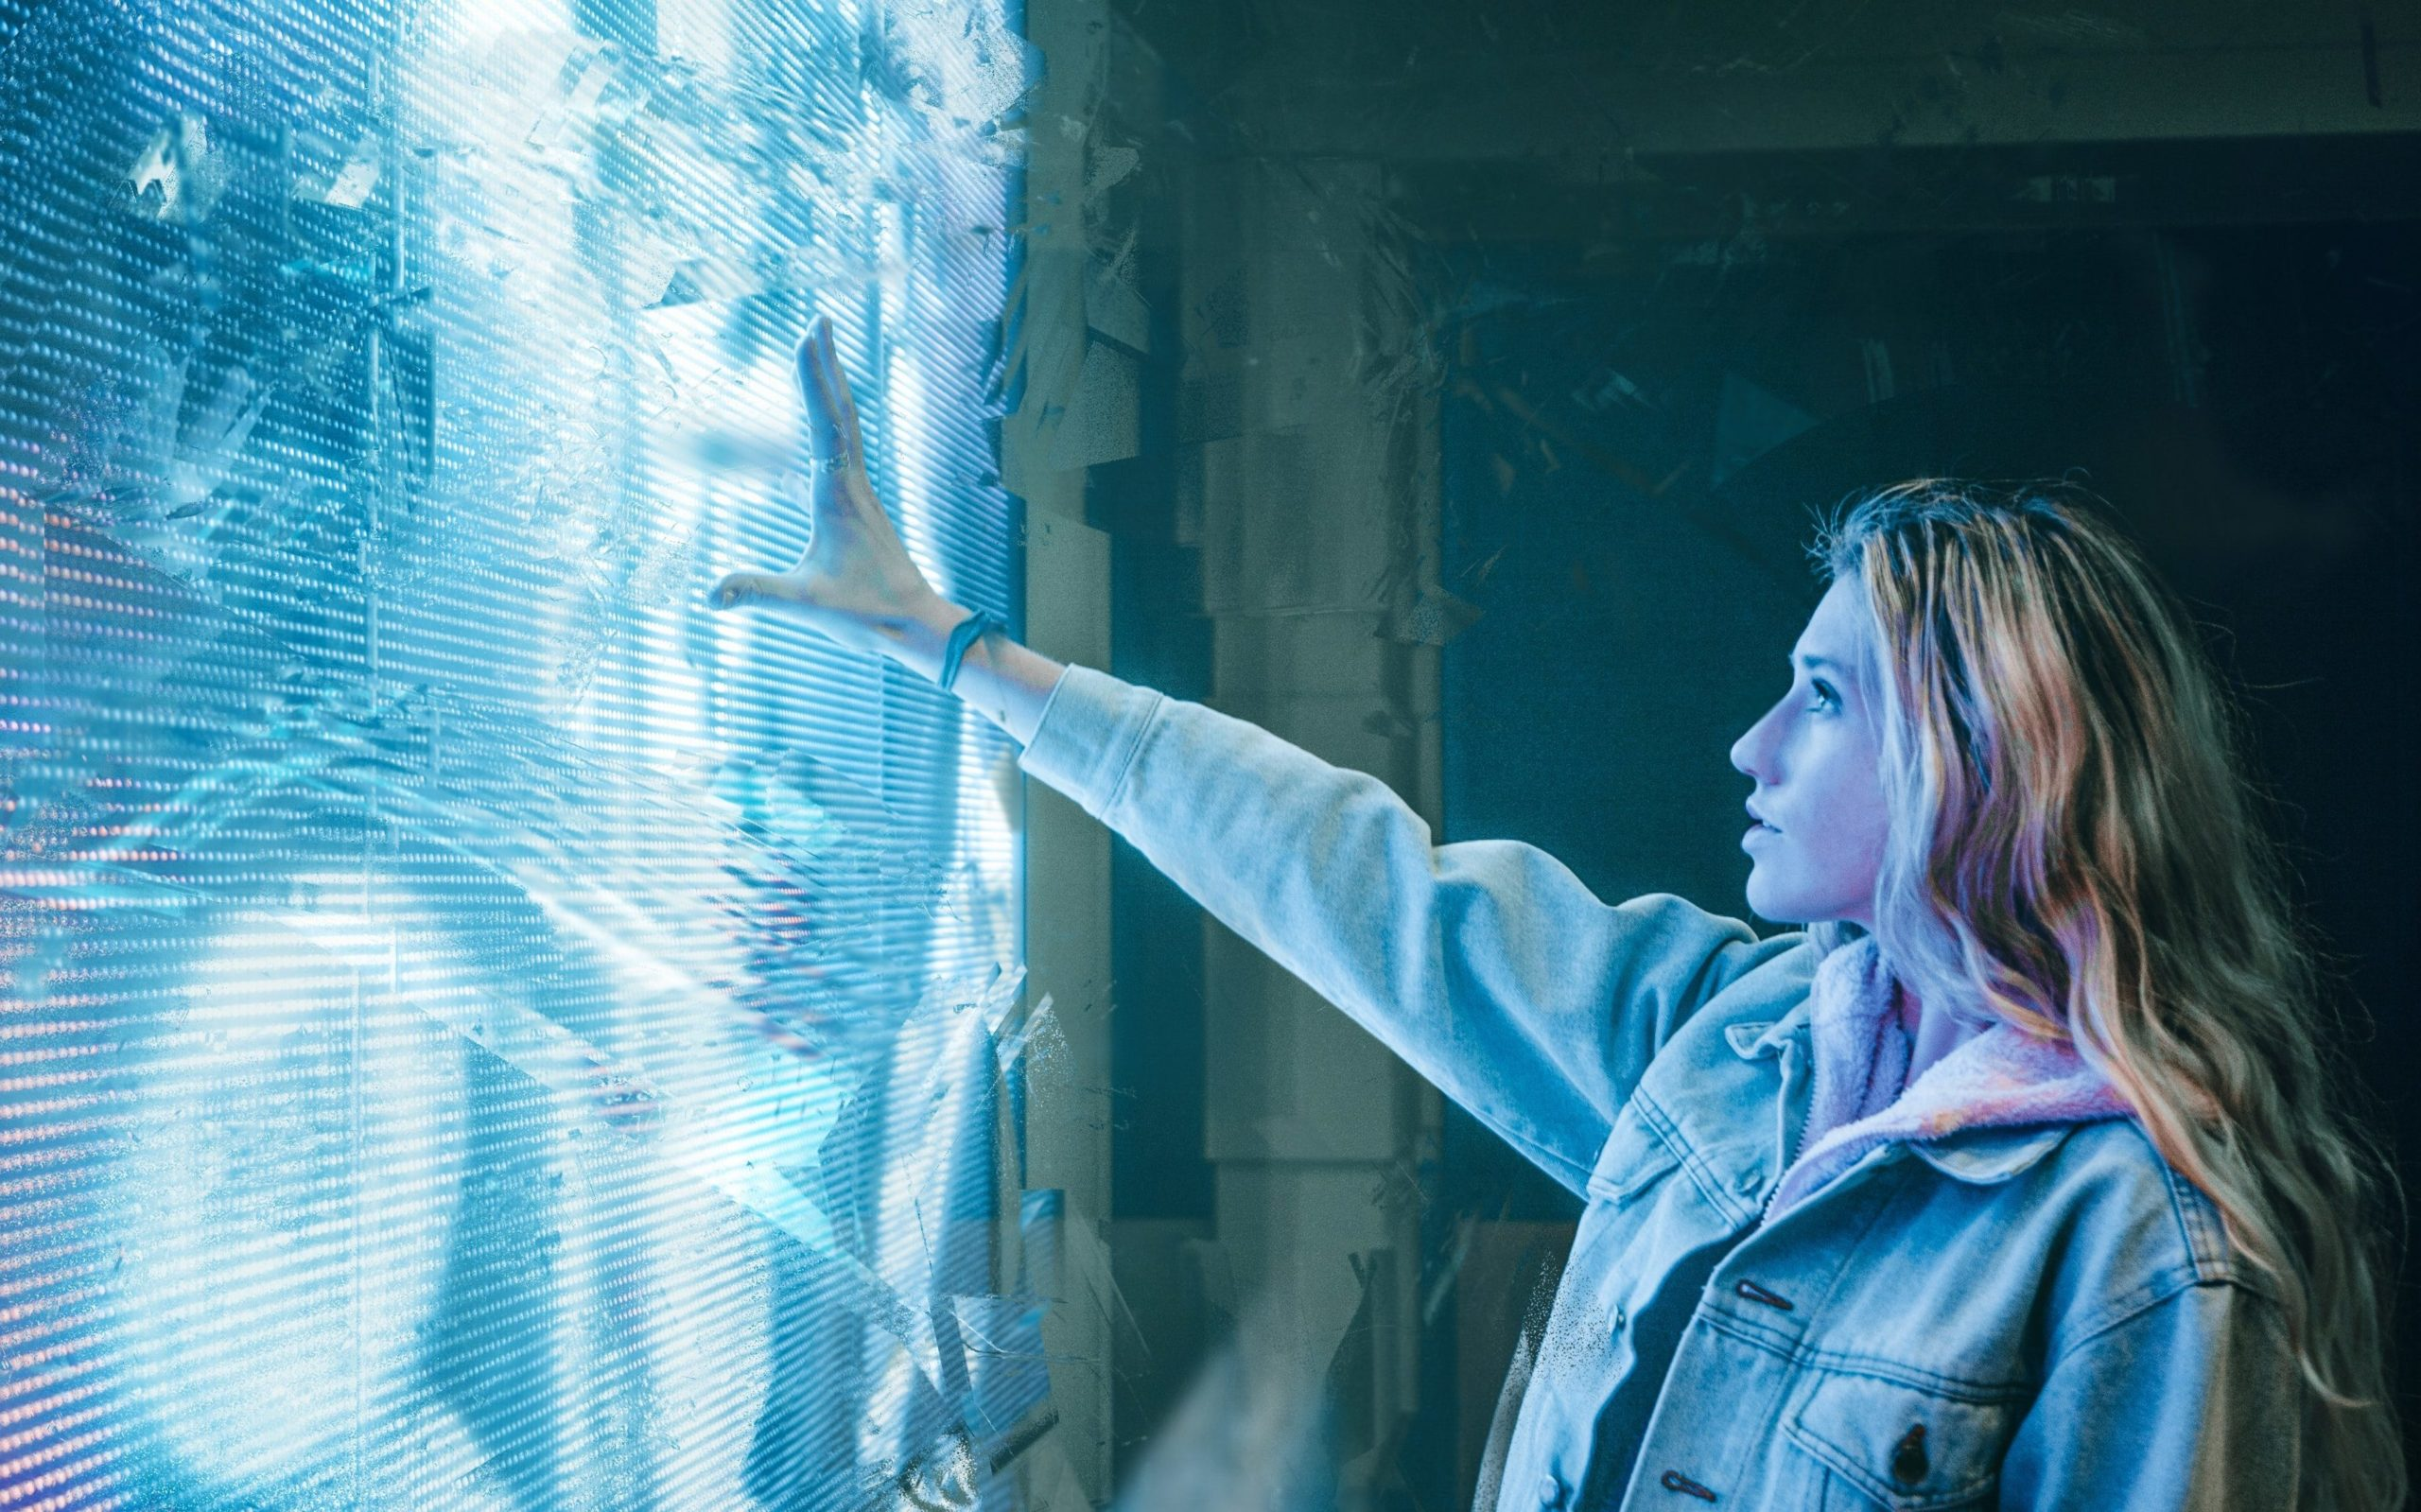 young woman touching a futuristic wall that is illuminated and blue and resembles a screen. smart home technology.